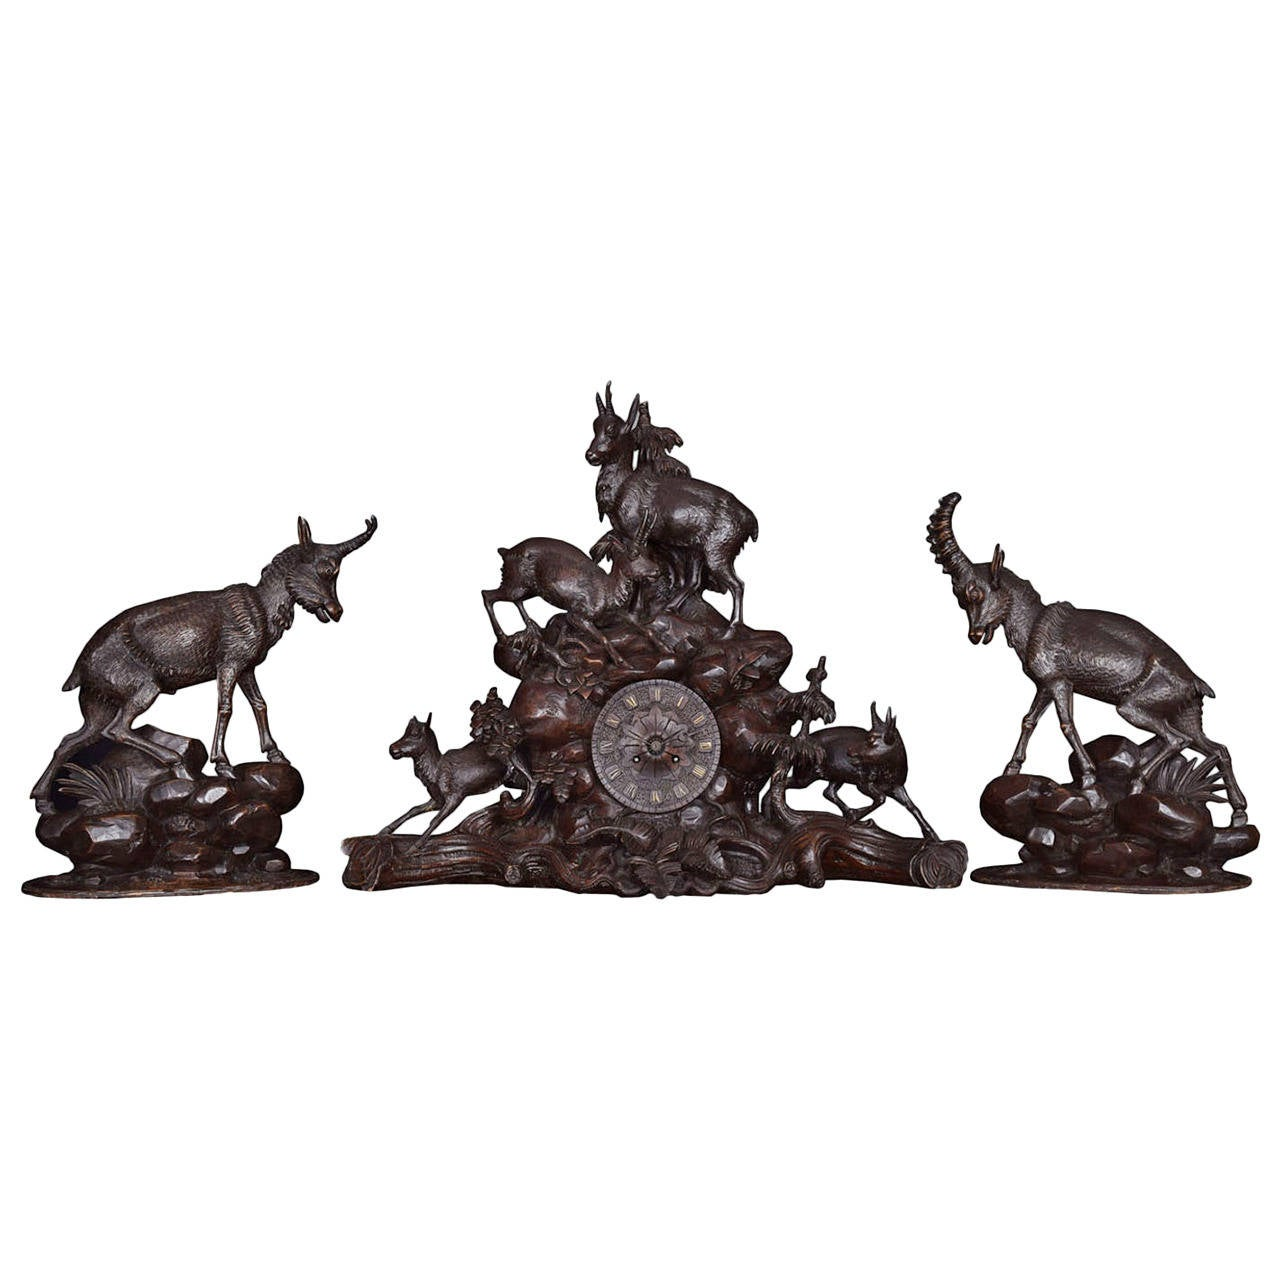 Rare 19th Century Black Forest Mantel Clock Set